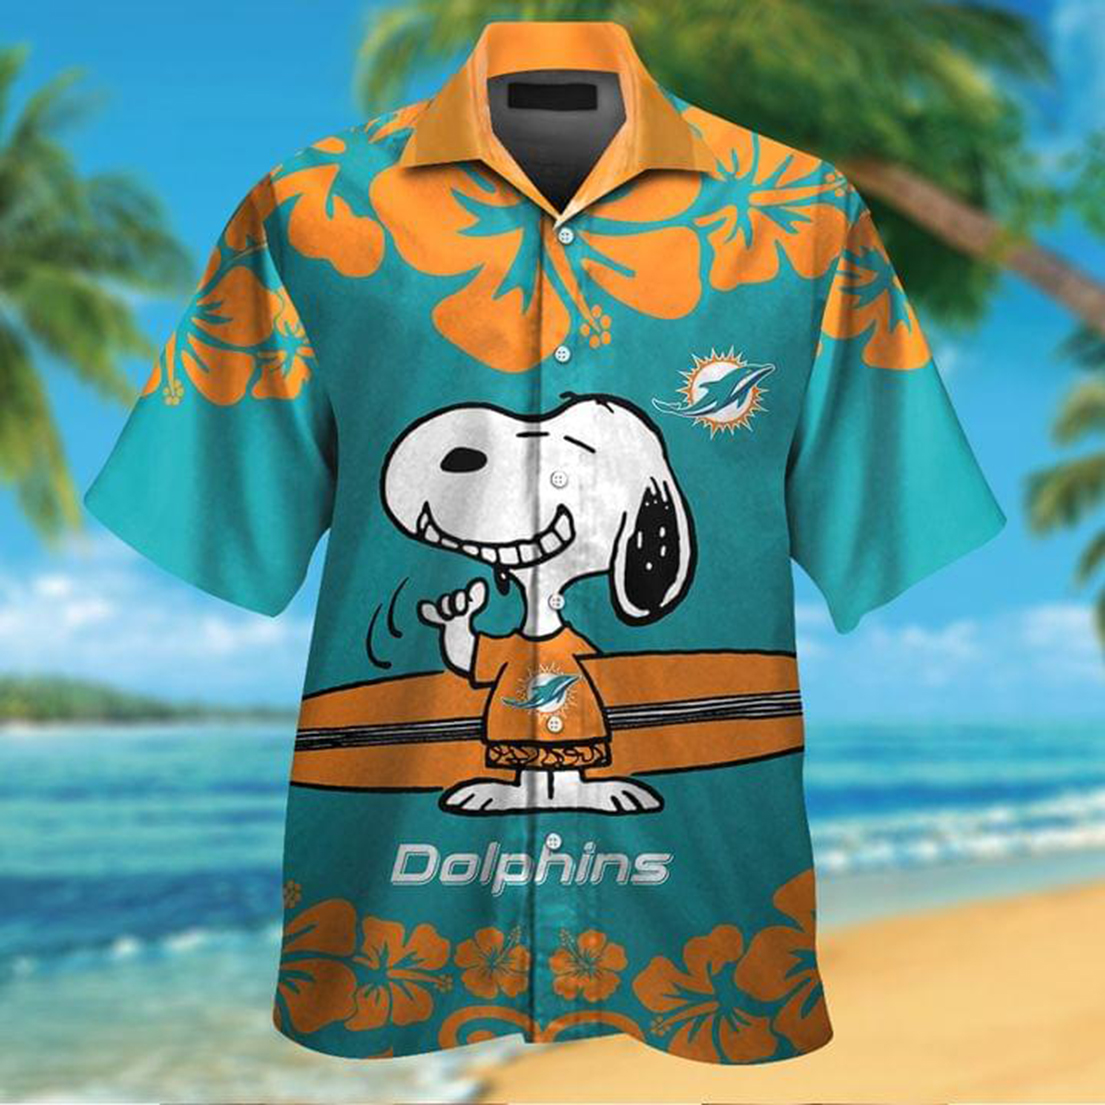 Snoopy and surfboard Miami Dolphins hawaiian shirt - Picture 1